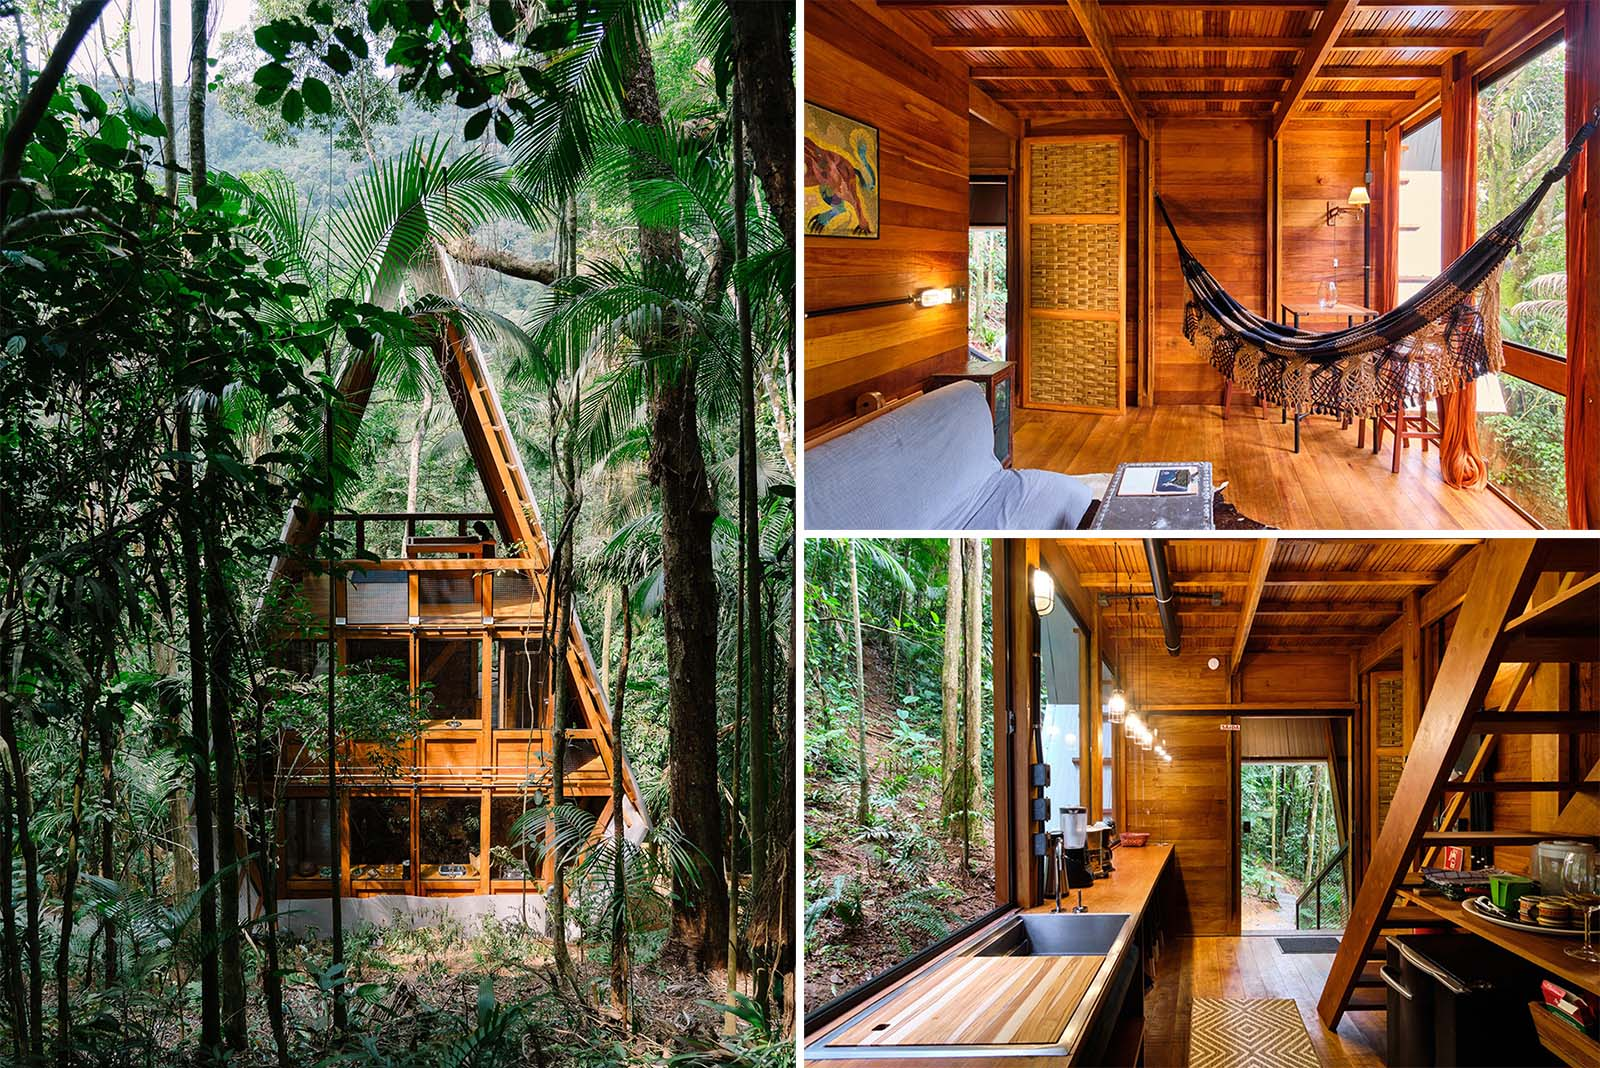 An A-Frame cabin in the forest with a warm wood interior.